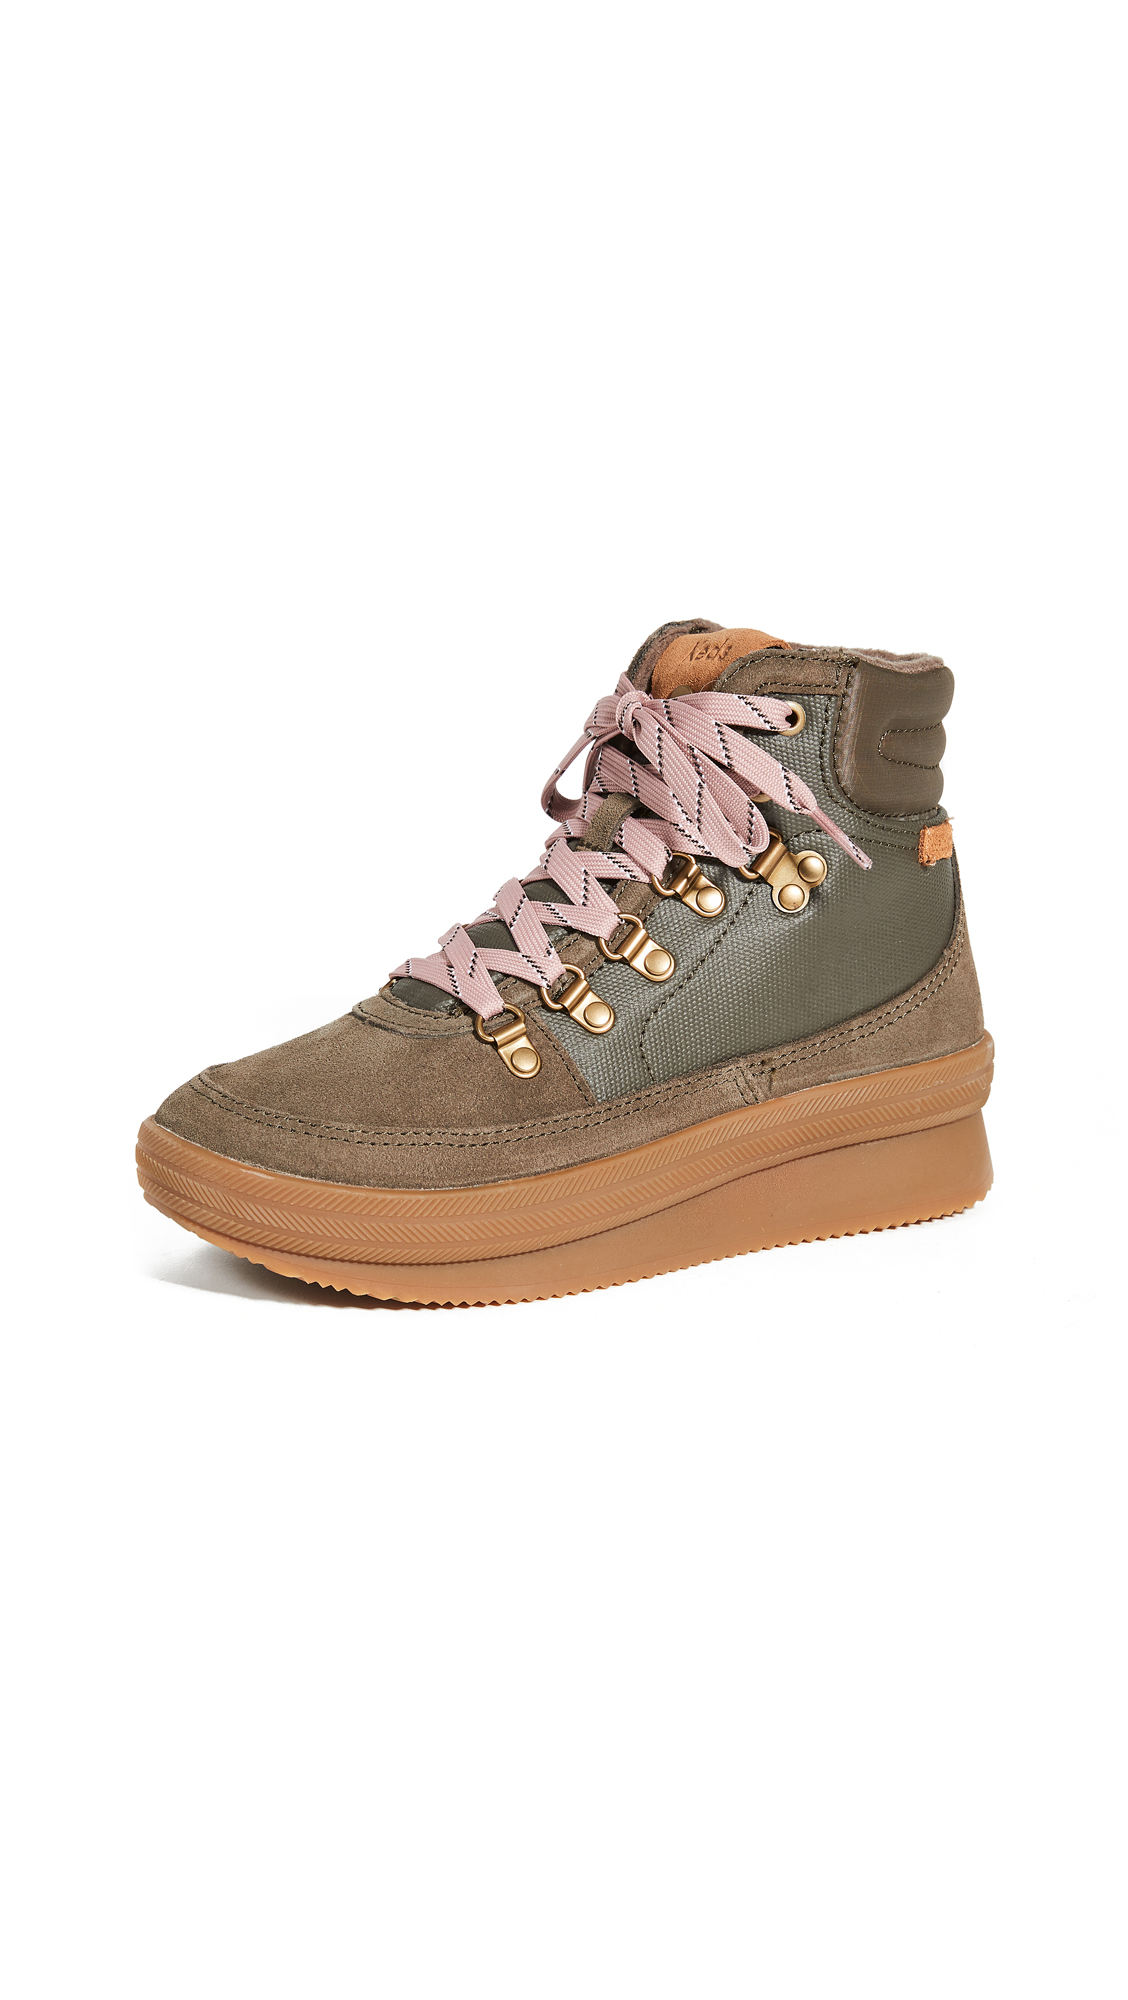 Keds MIDLAND WAXED CANVAS SNEAKER BOOTS